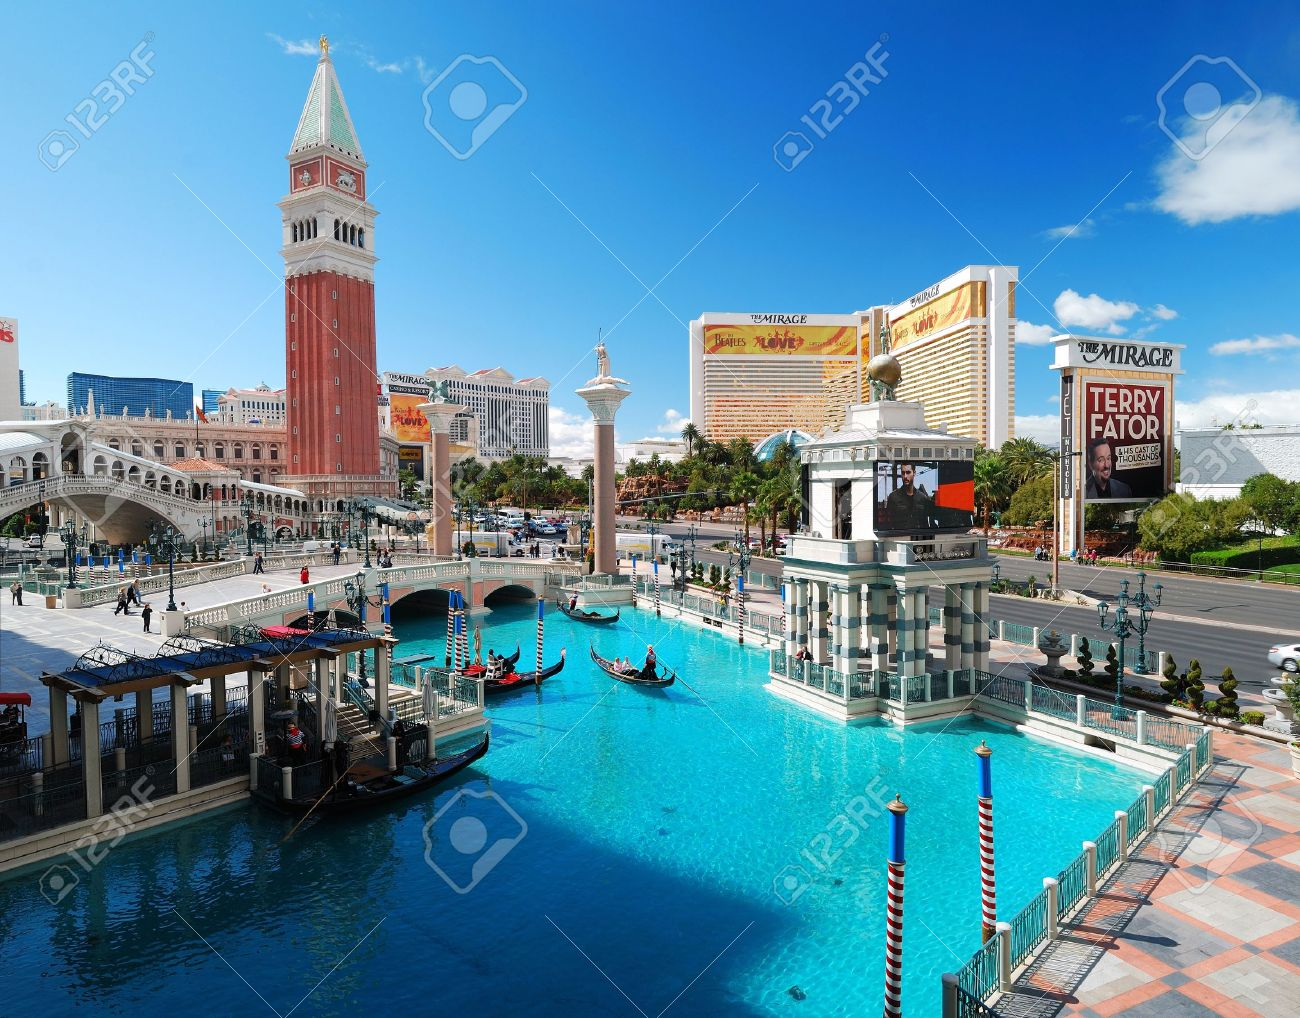 LAS VEGAS - MAR 4: Venetian Hotel Casino on March 4, 2010 in Las Vegas, Nevada. Venetian is famous with Venice replica scene and European style architecture and is filmed in several US movies. Stock Photo - 9158197